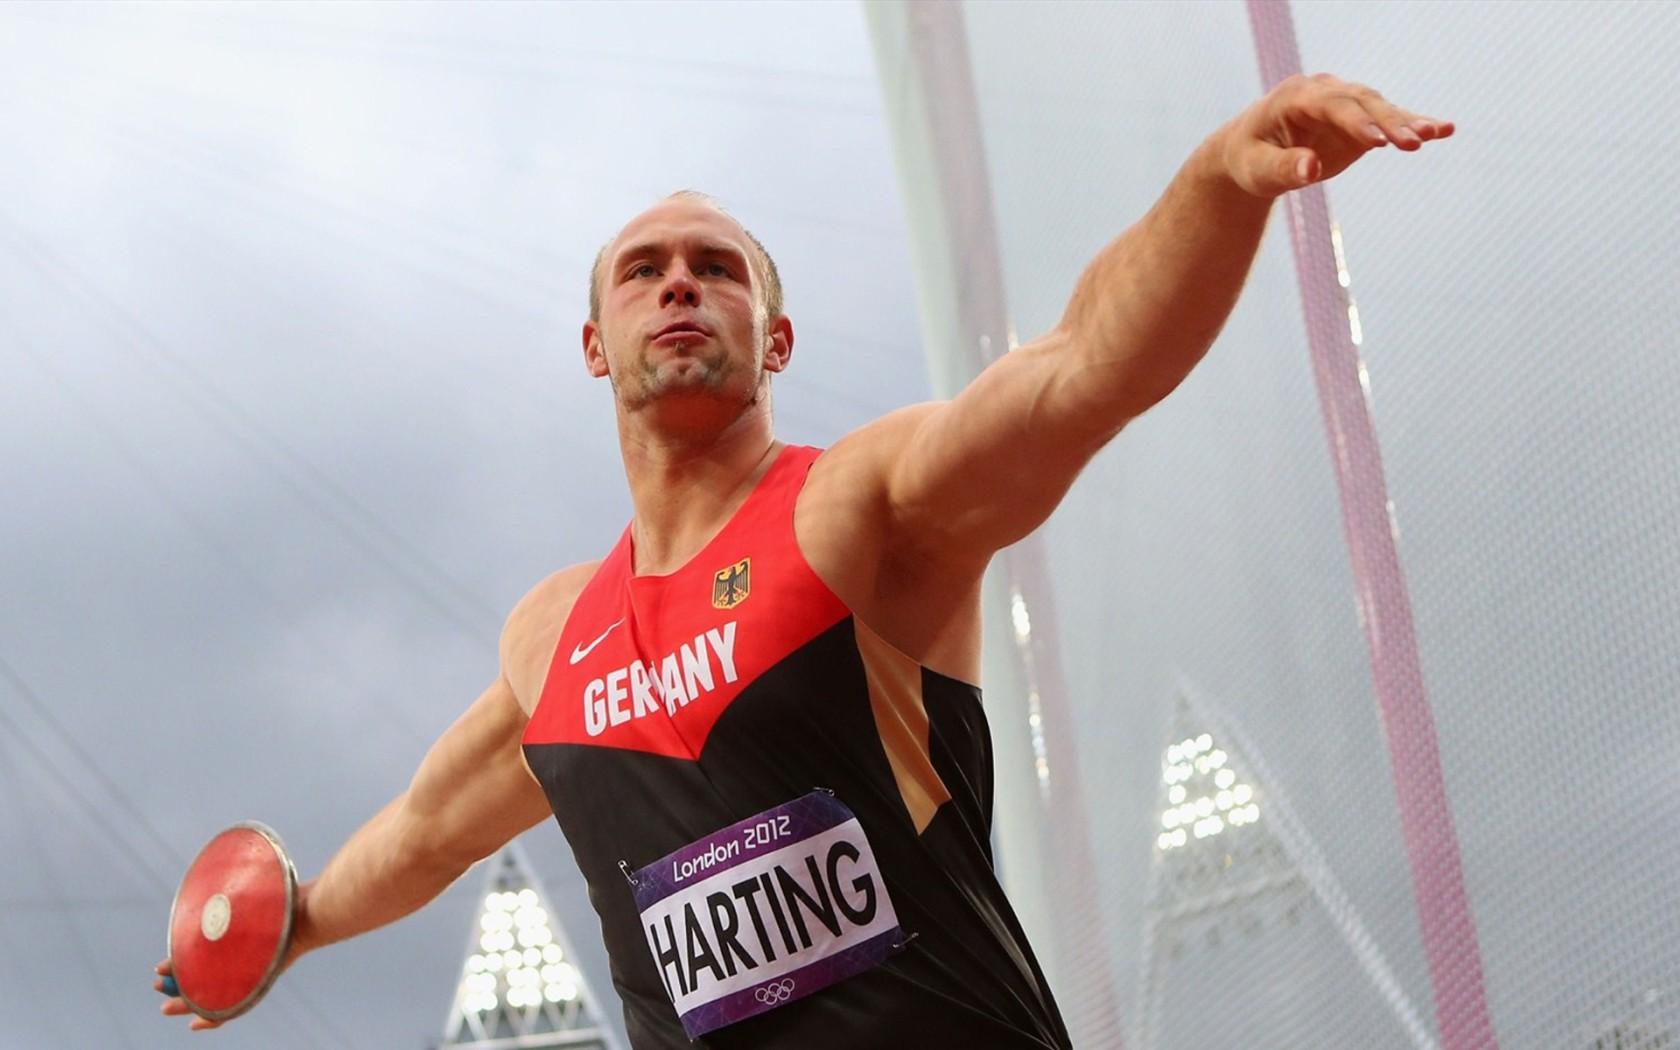 Sport_London_2012_Olympic_Games_Robert_Harting_034541_